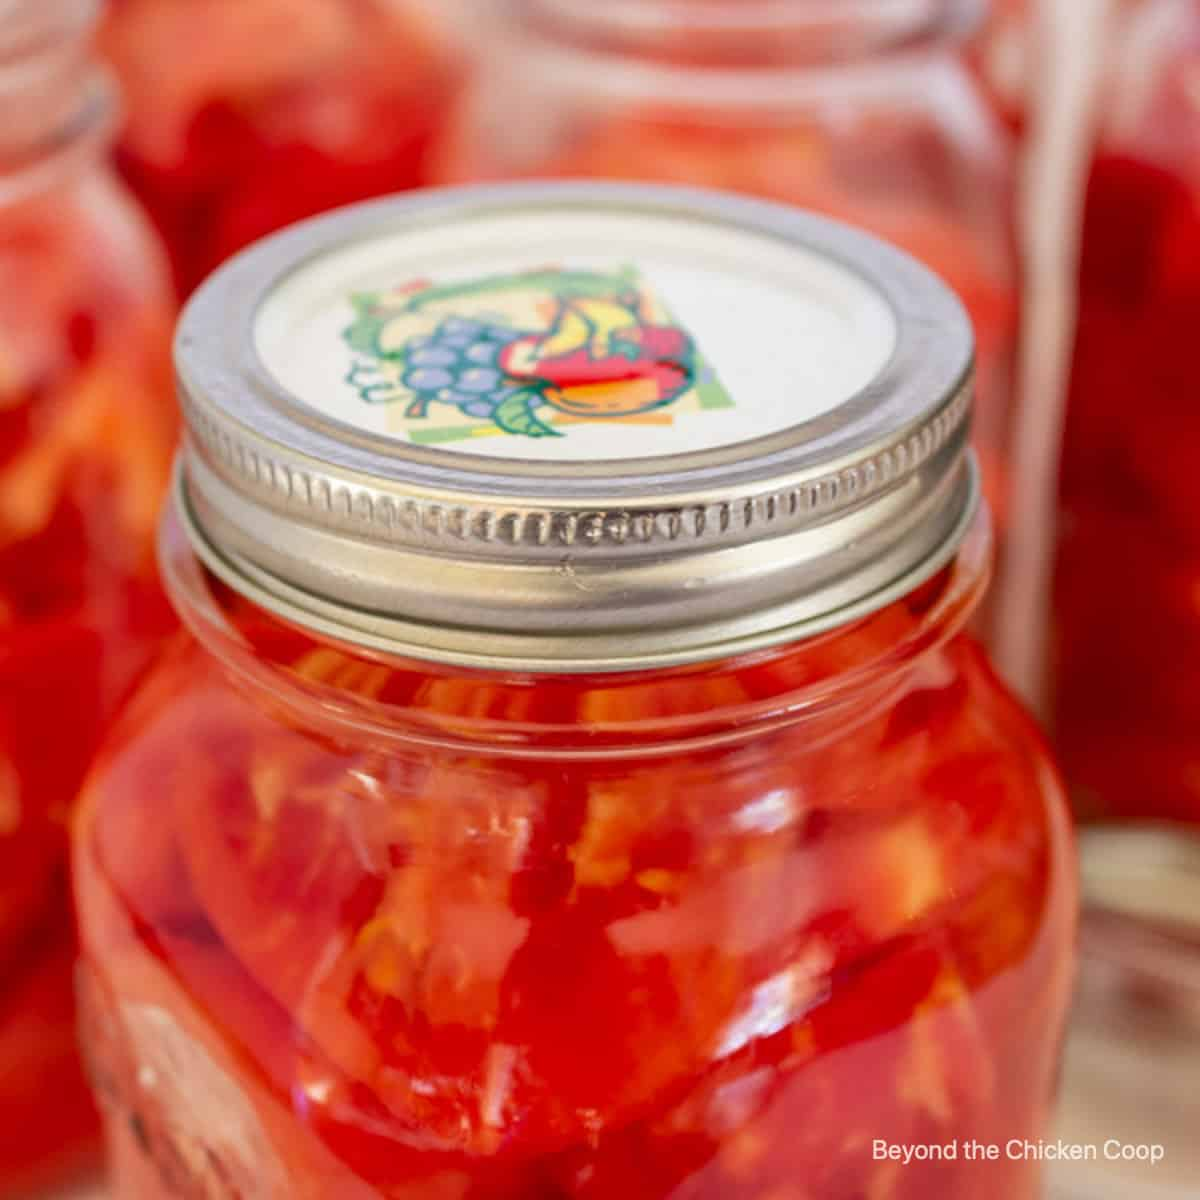 A jar of home canned tomatoes.